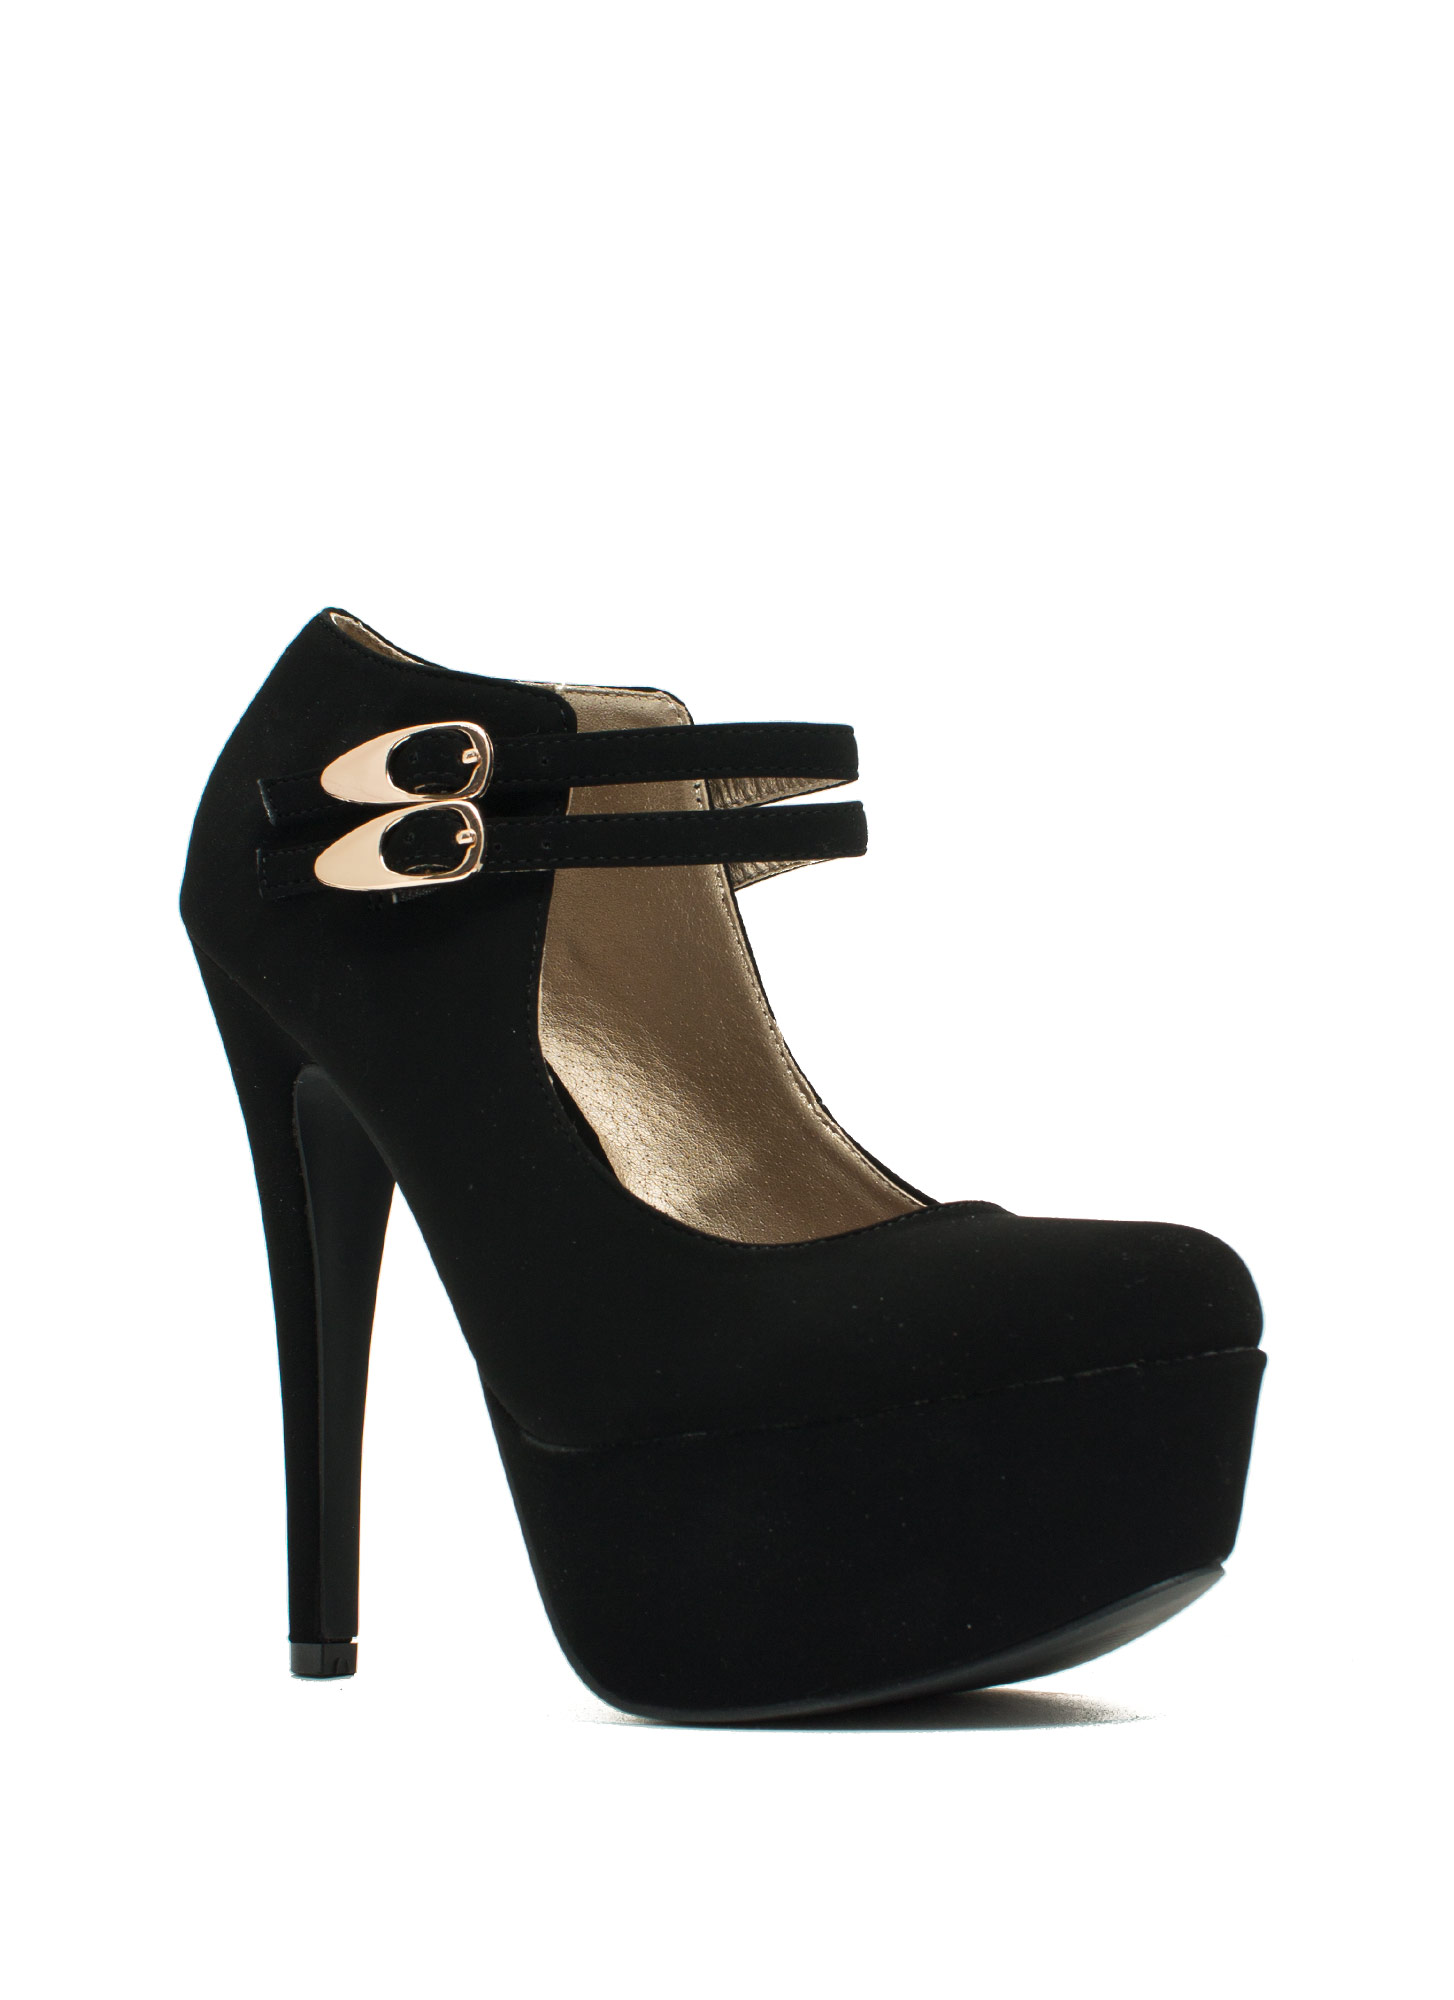 Girl Crush Faux Nubuck Mary Jane Heels BLACK